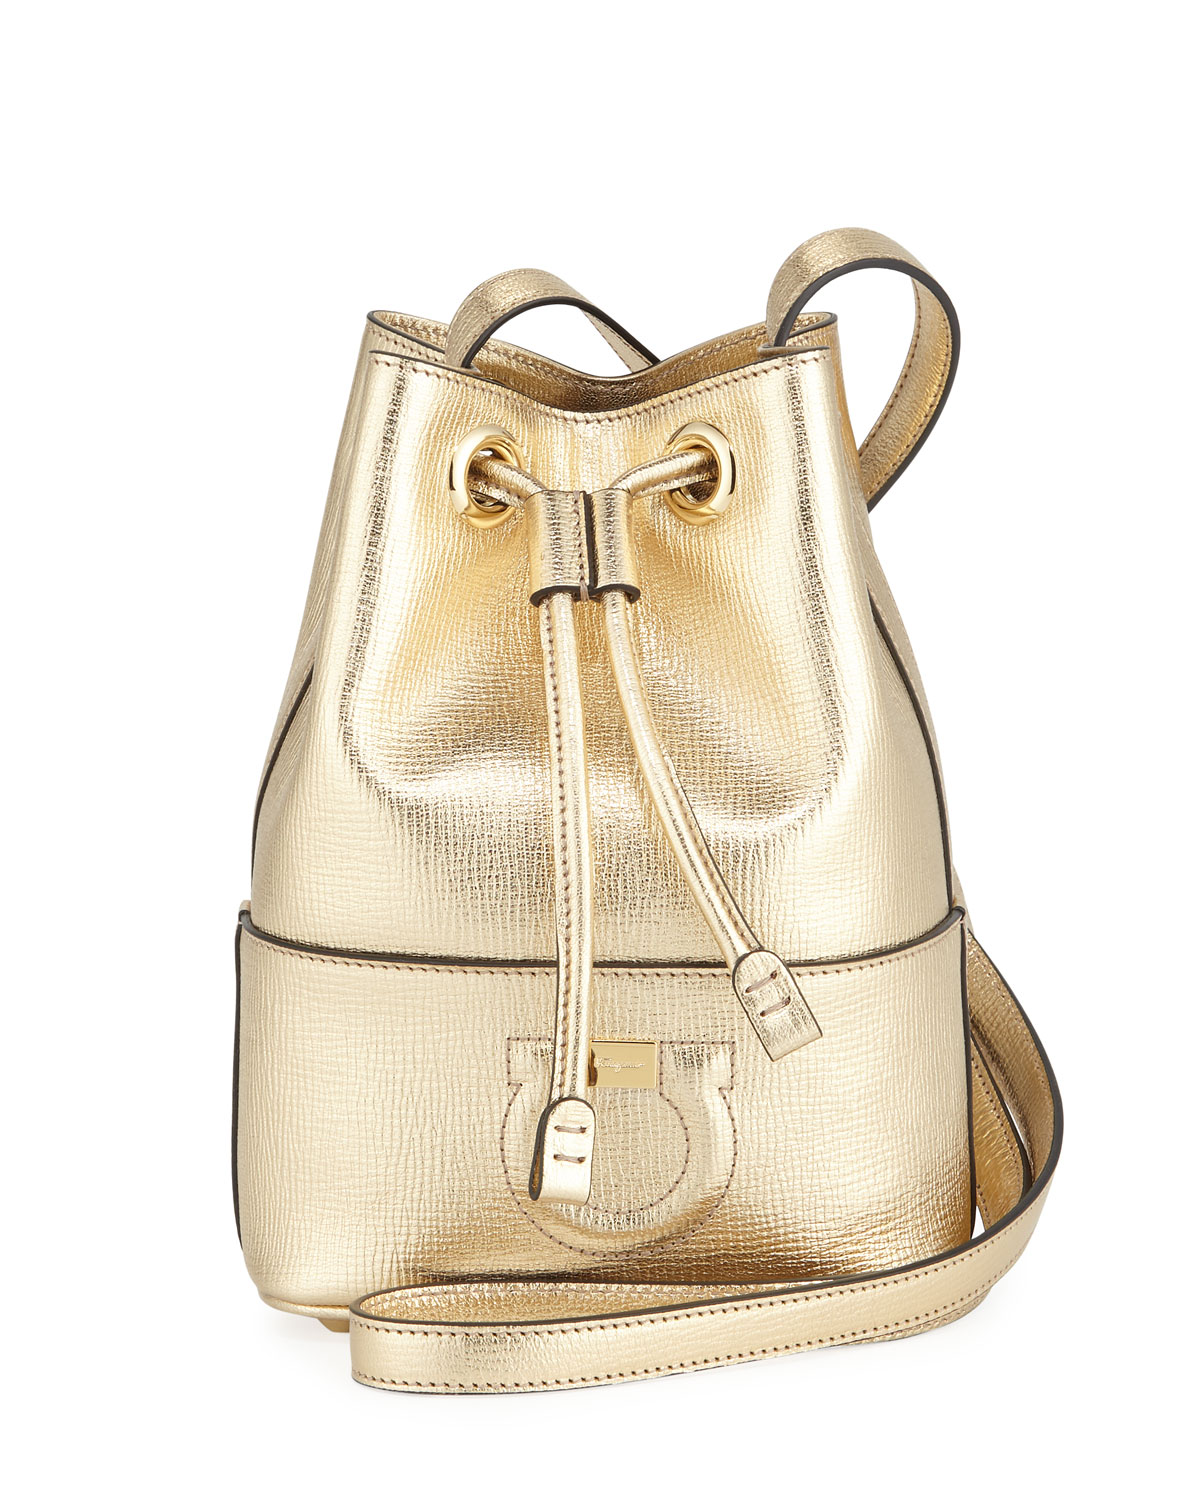 Salvatore Ferragamo Gancio City Metallic Leather Bucket Bag  ebd6baf27954f